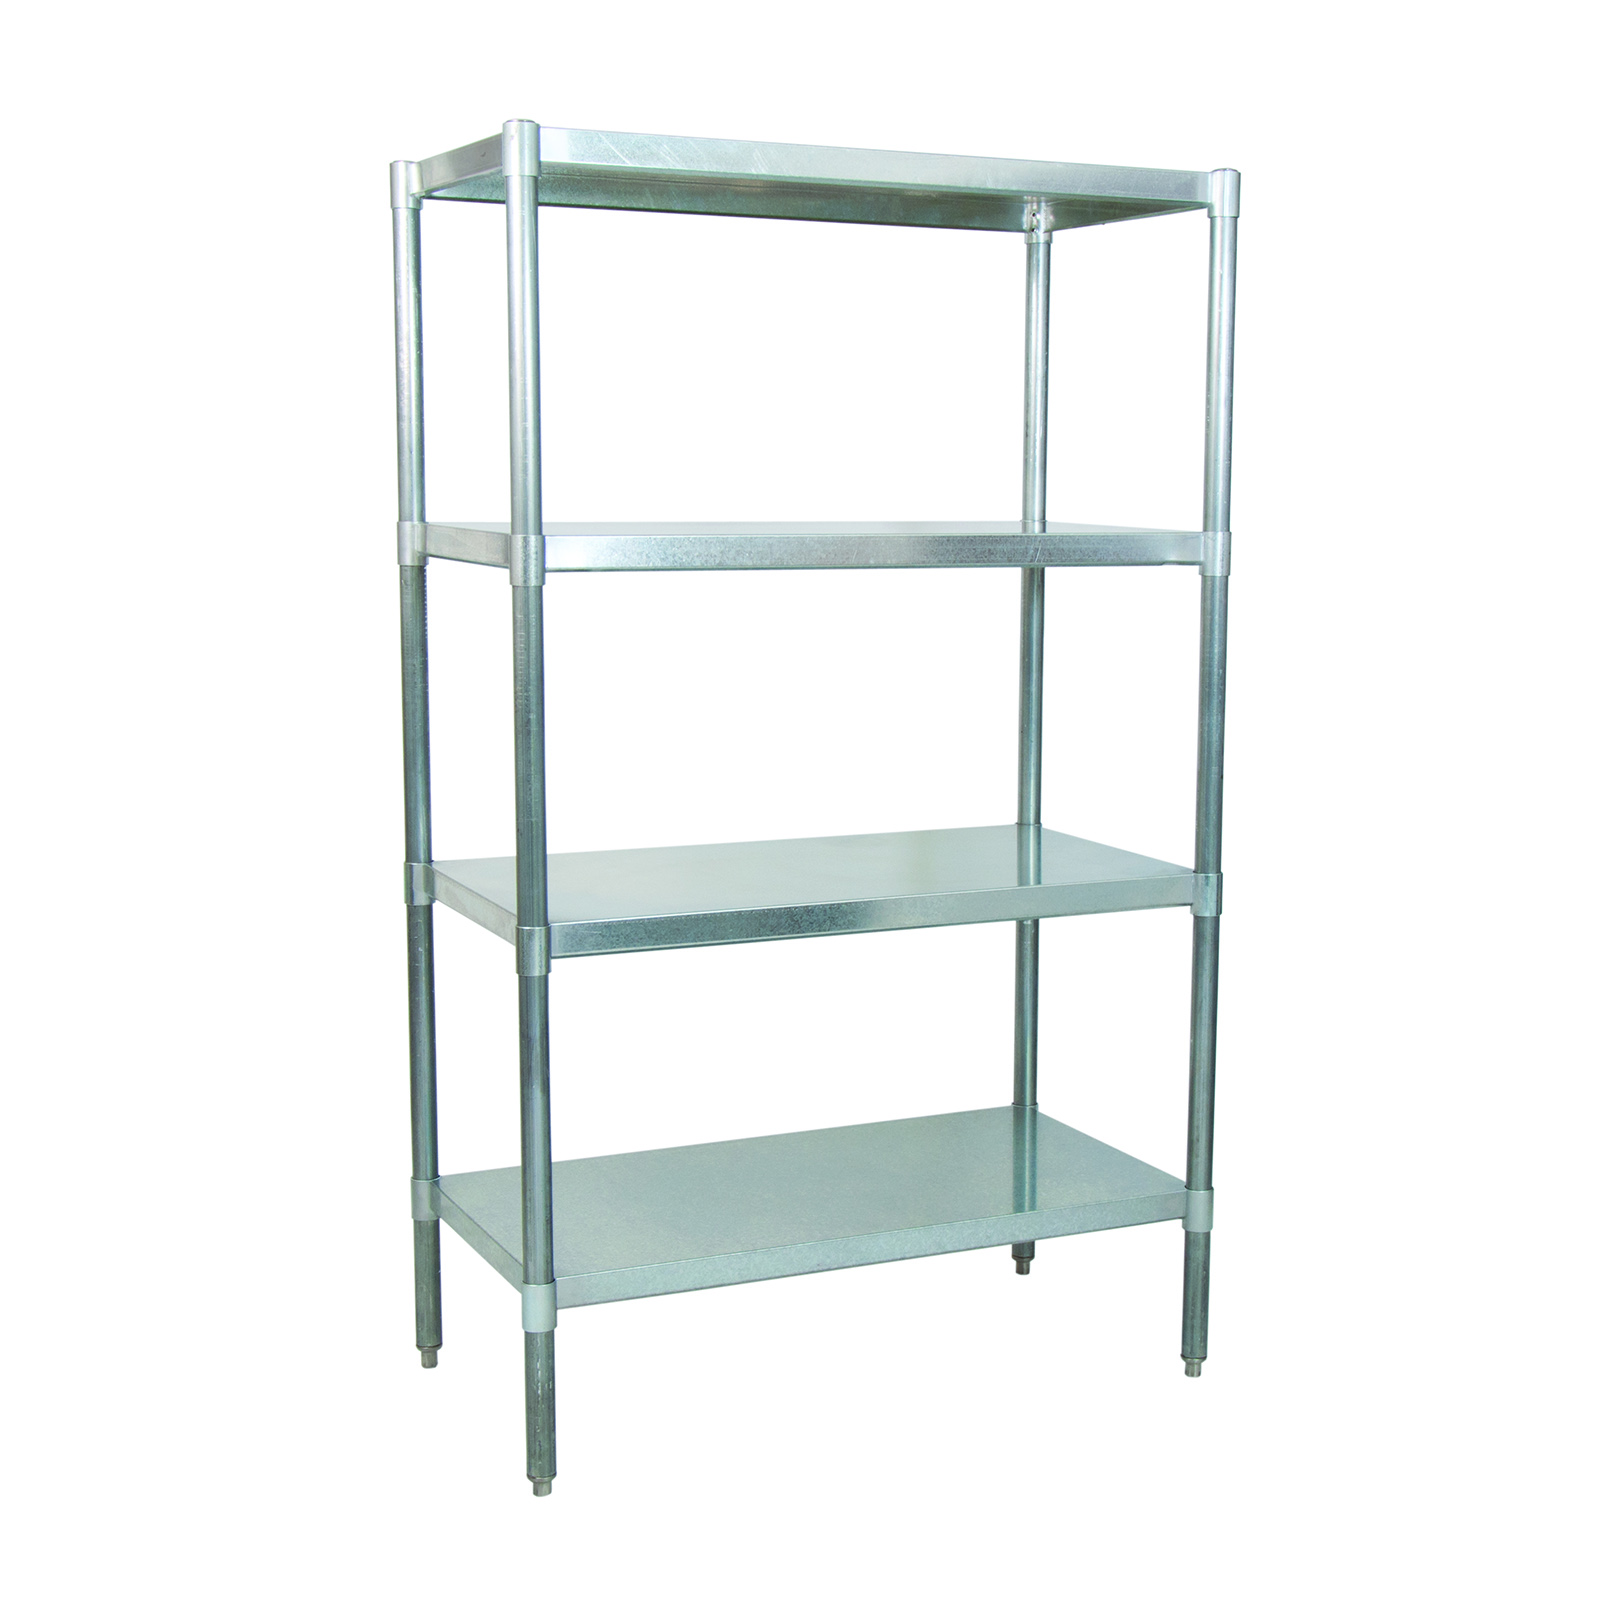 BK Resources VSU6-3124 shelving unit, solid flat